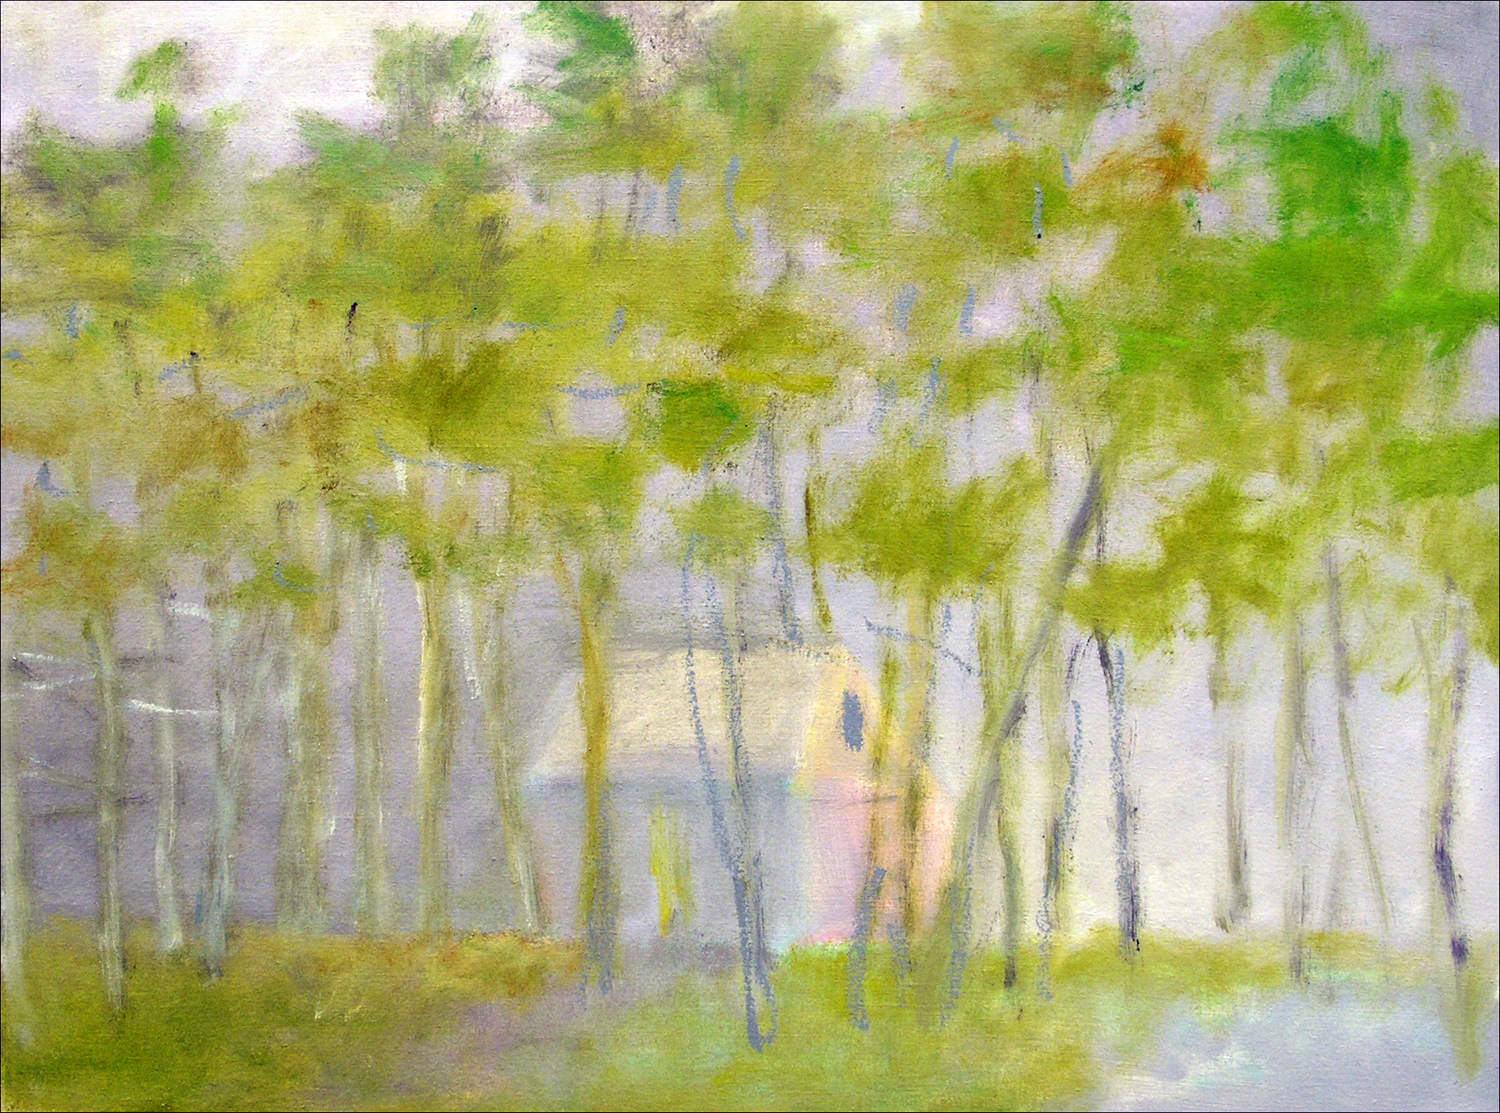 Pale House Amid Trees , 2005 Oil on canvas 22h x 30w inches